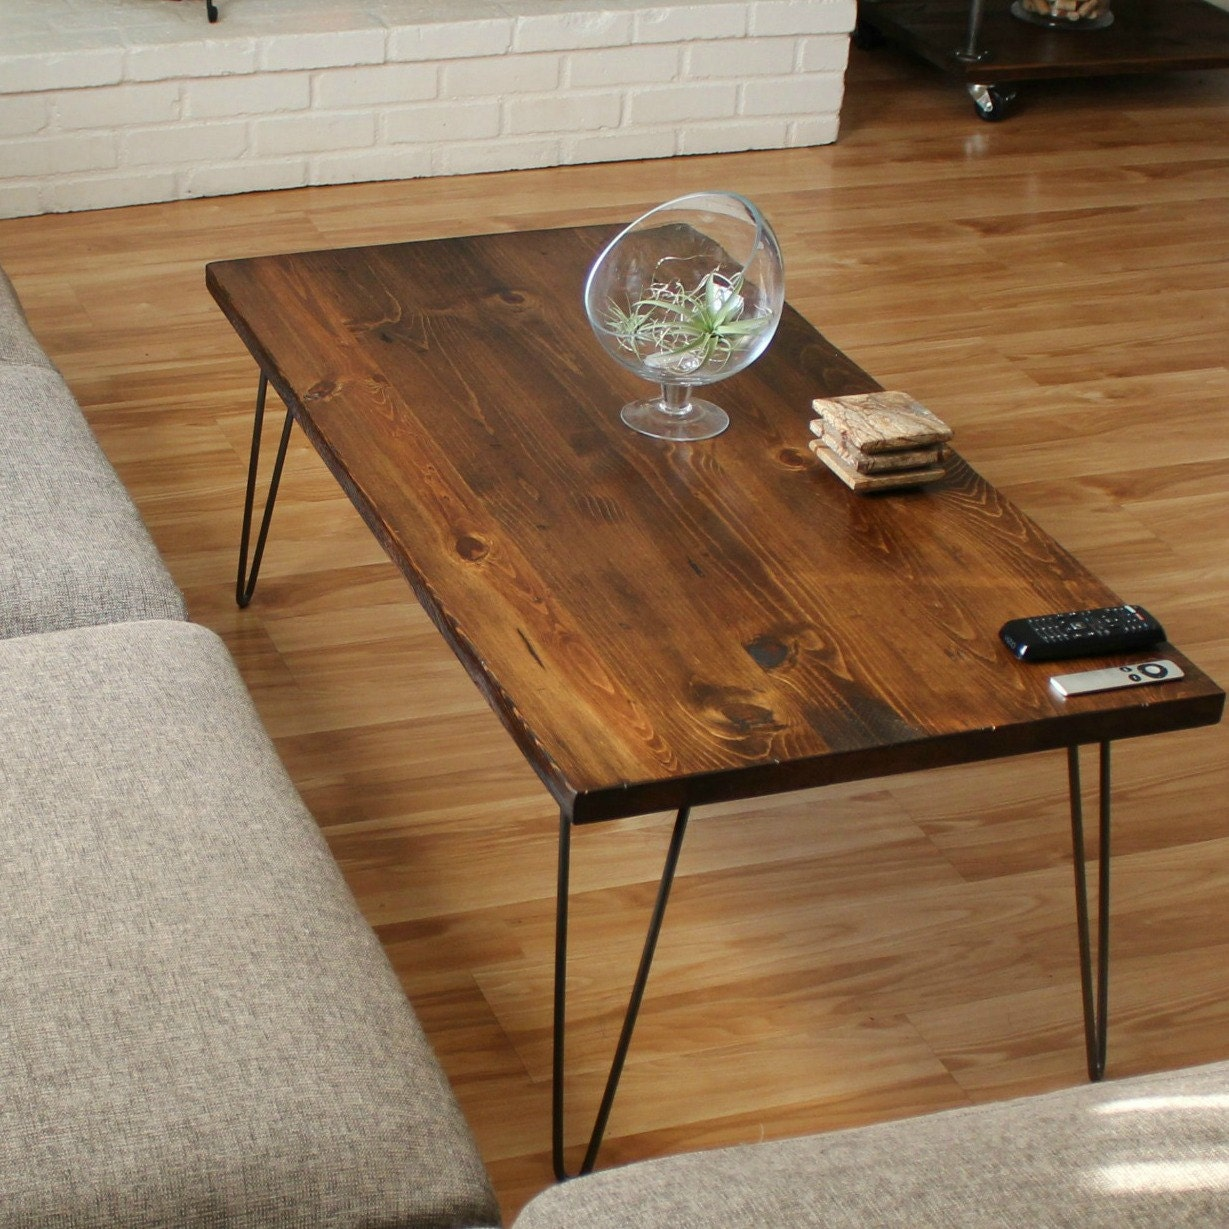 Young Industrial Coffee Table: Wood Coffee Table With Hairpin Legs Industrial Coffee Table